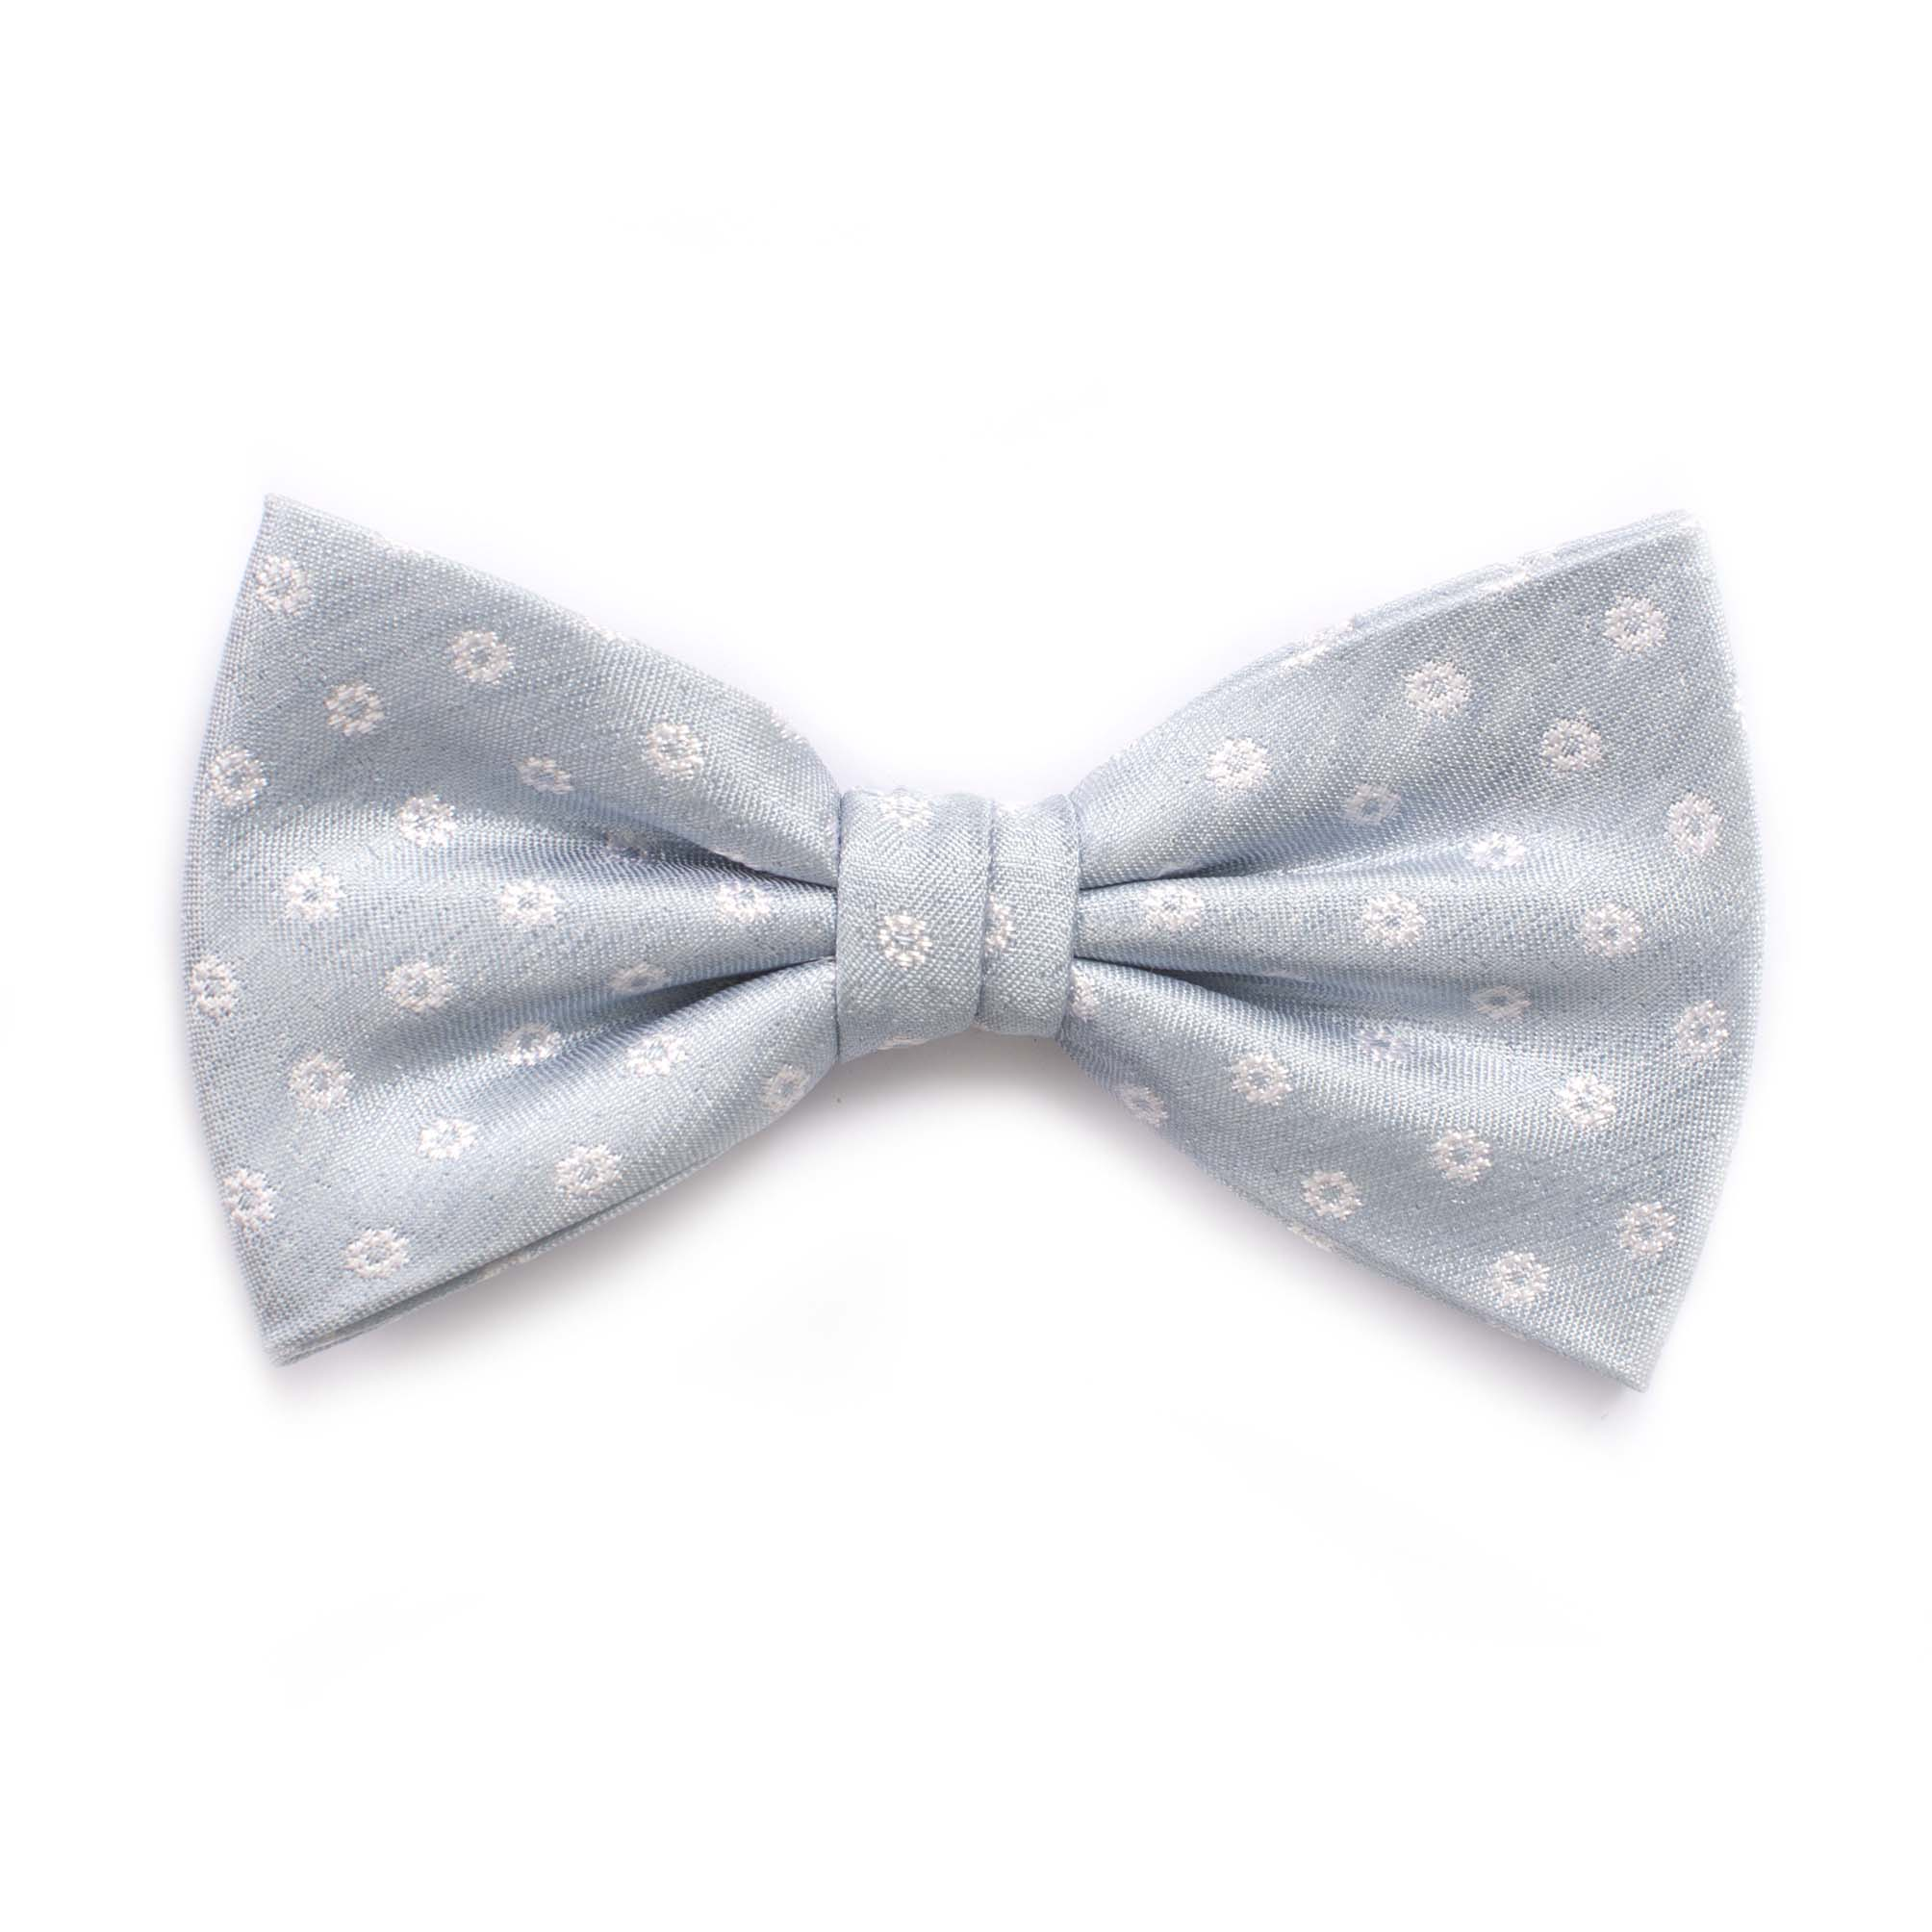 Bow tie with small flower design light blue